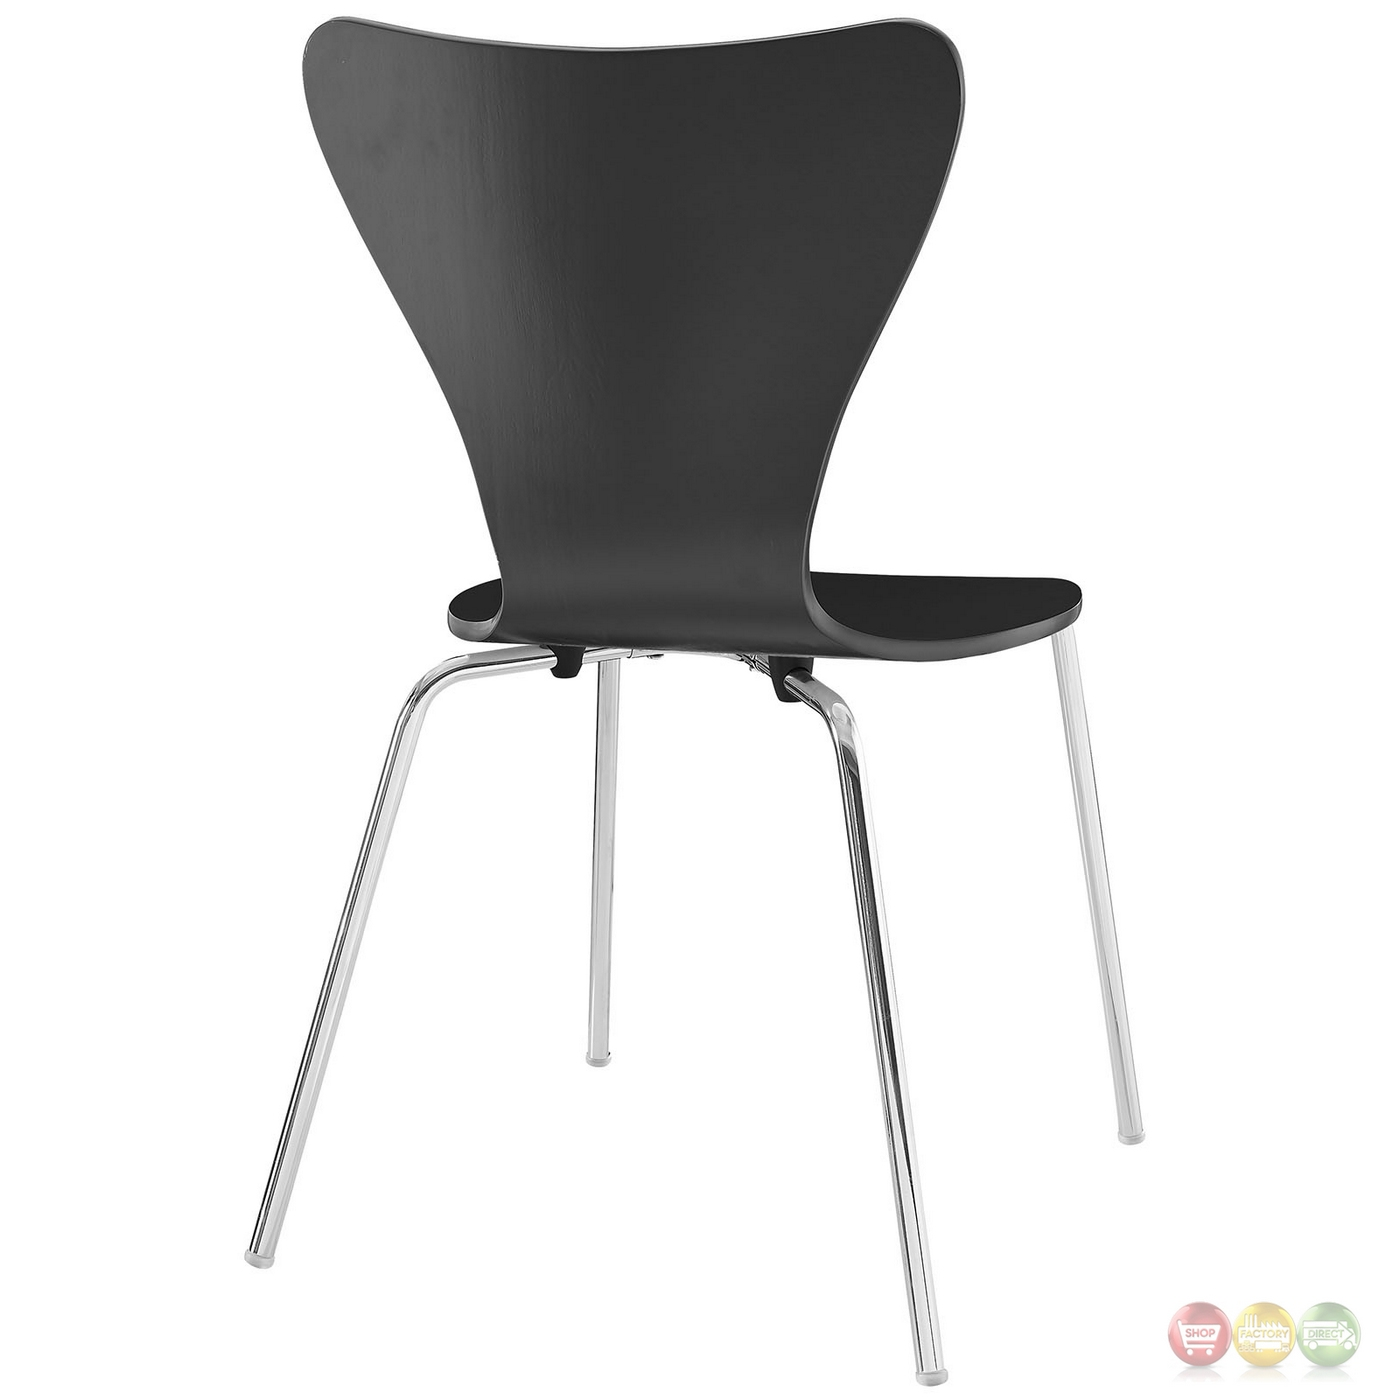 black dining room chairs with chrome legs kenny chesney blue chair rum hat ernie modern wood grain panel side w